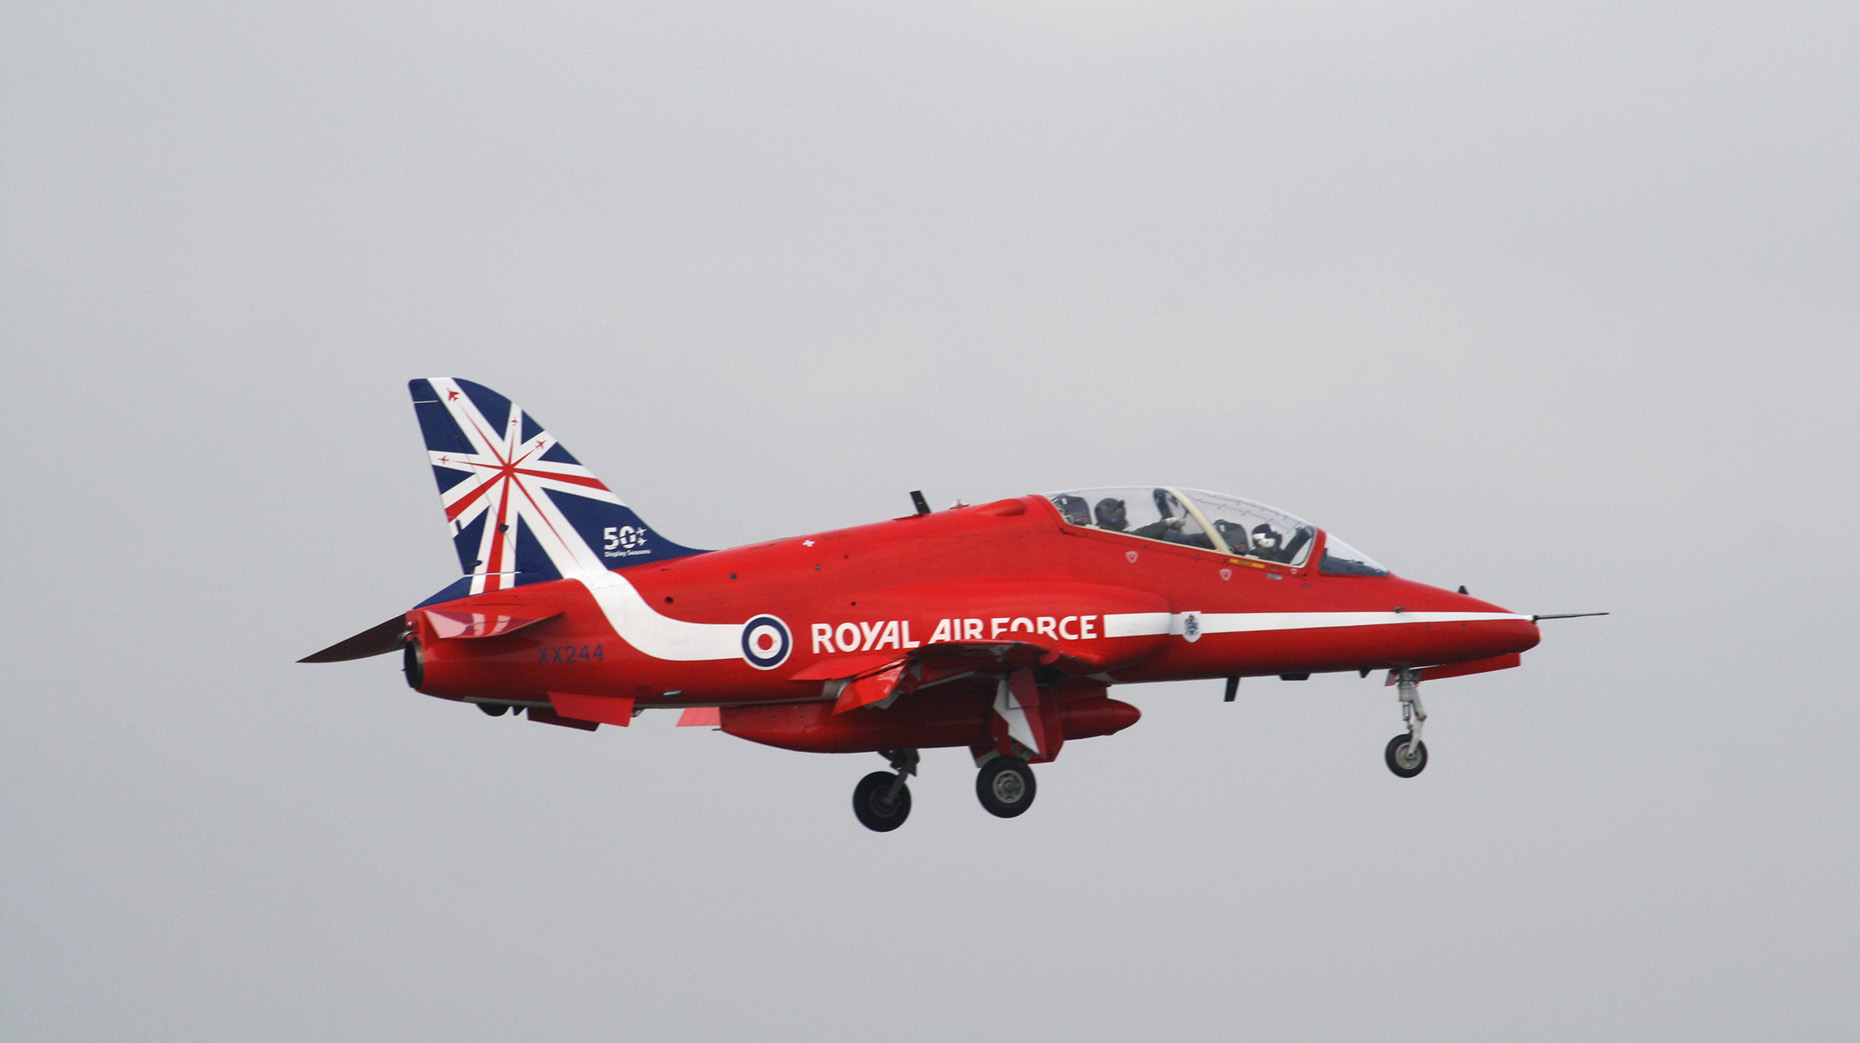 Hawk aircraft crashes at Wales RAF base